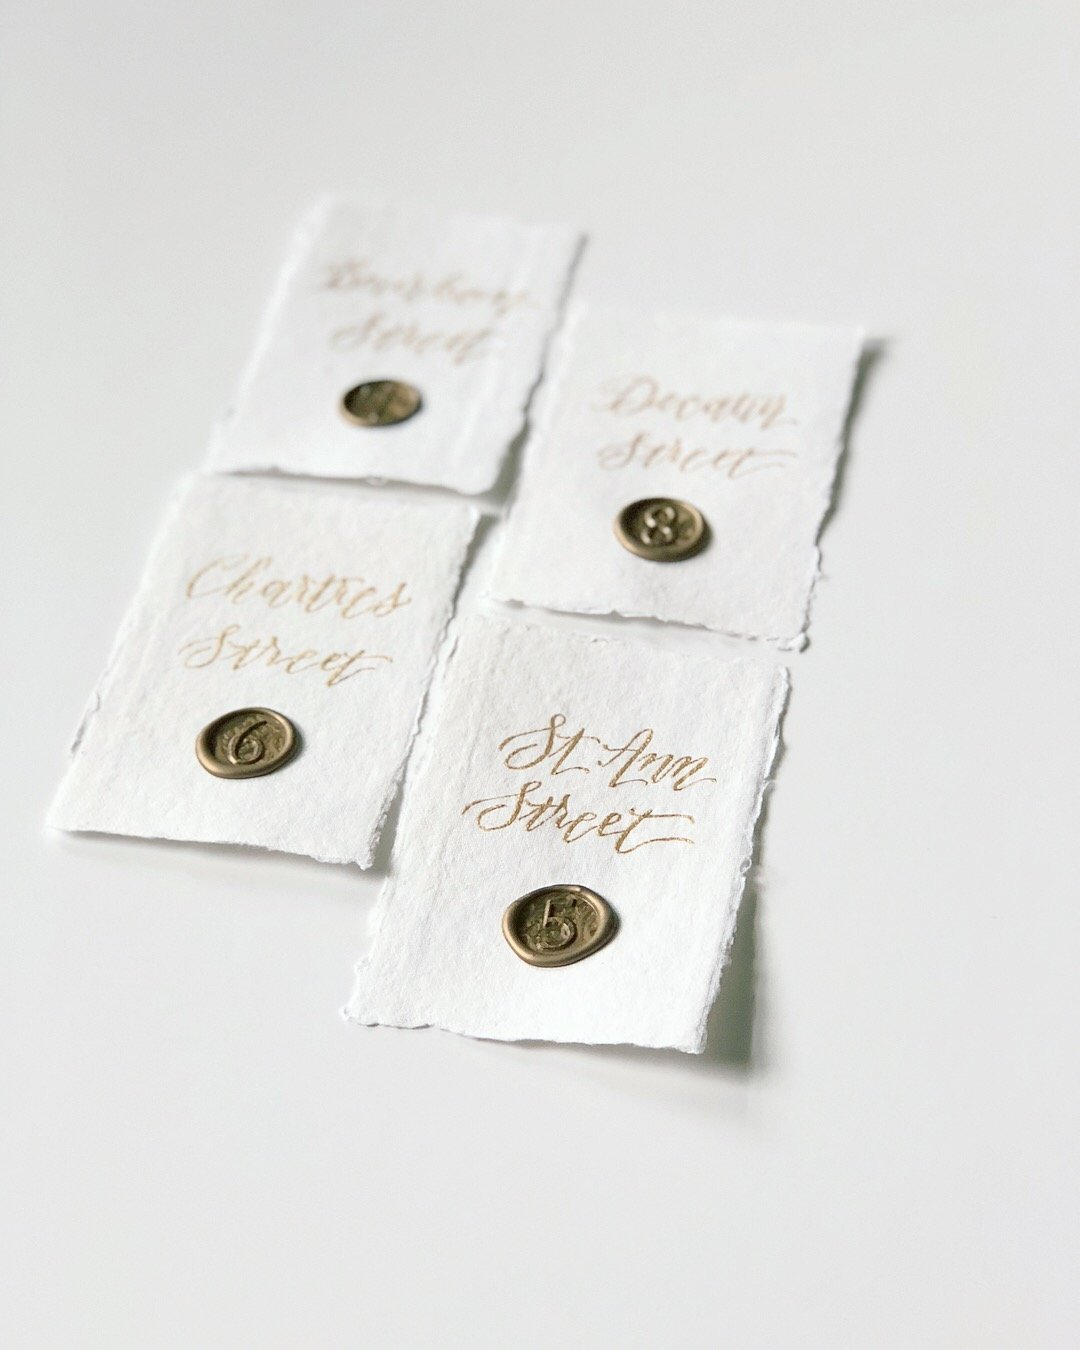 Deckled edge paper with wax seal numbers